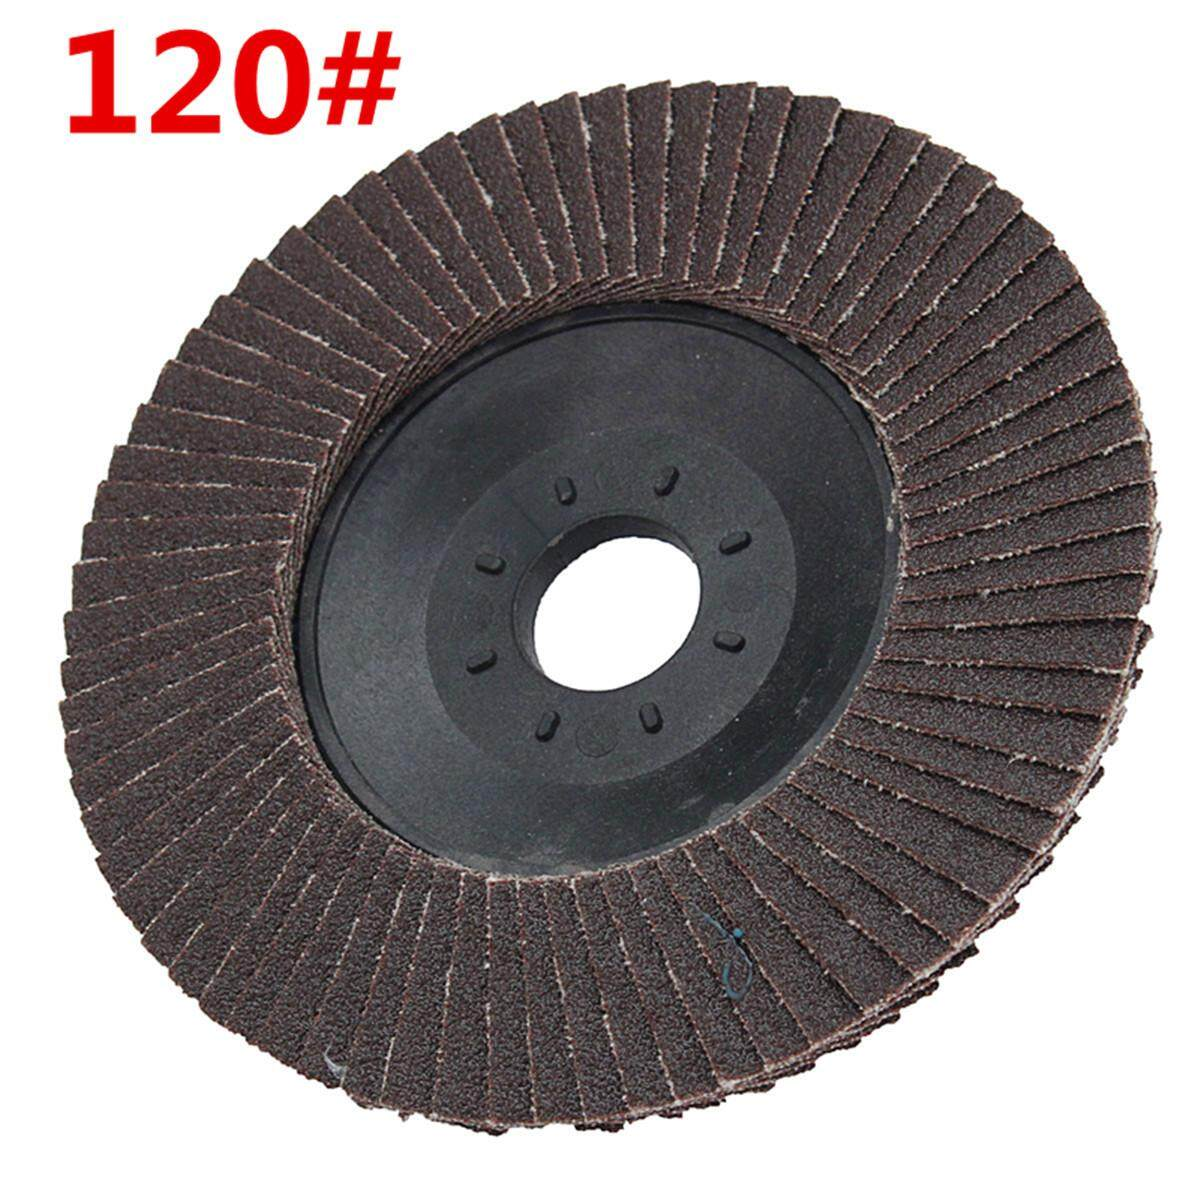 1Pcs 4Inch 100mm 120 240 320 Grit Angle Grinder Flap Disc Sanding Wheel Hole Rotary Tool